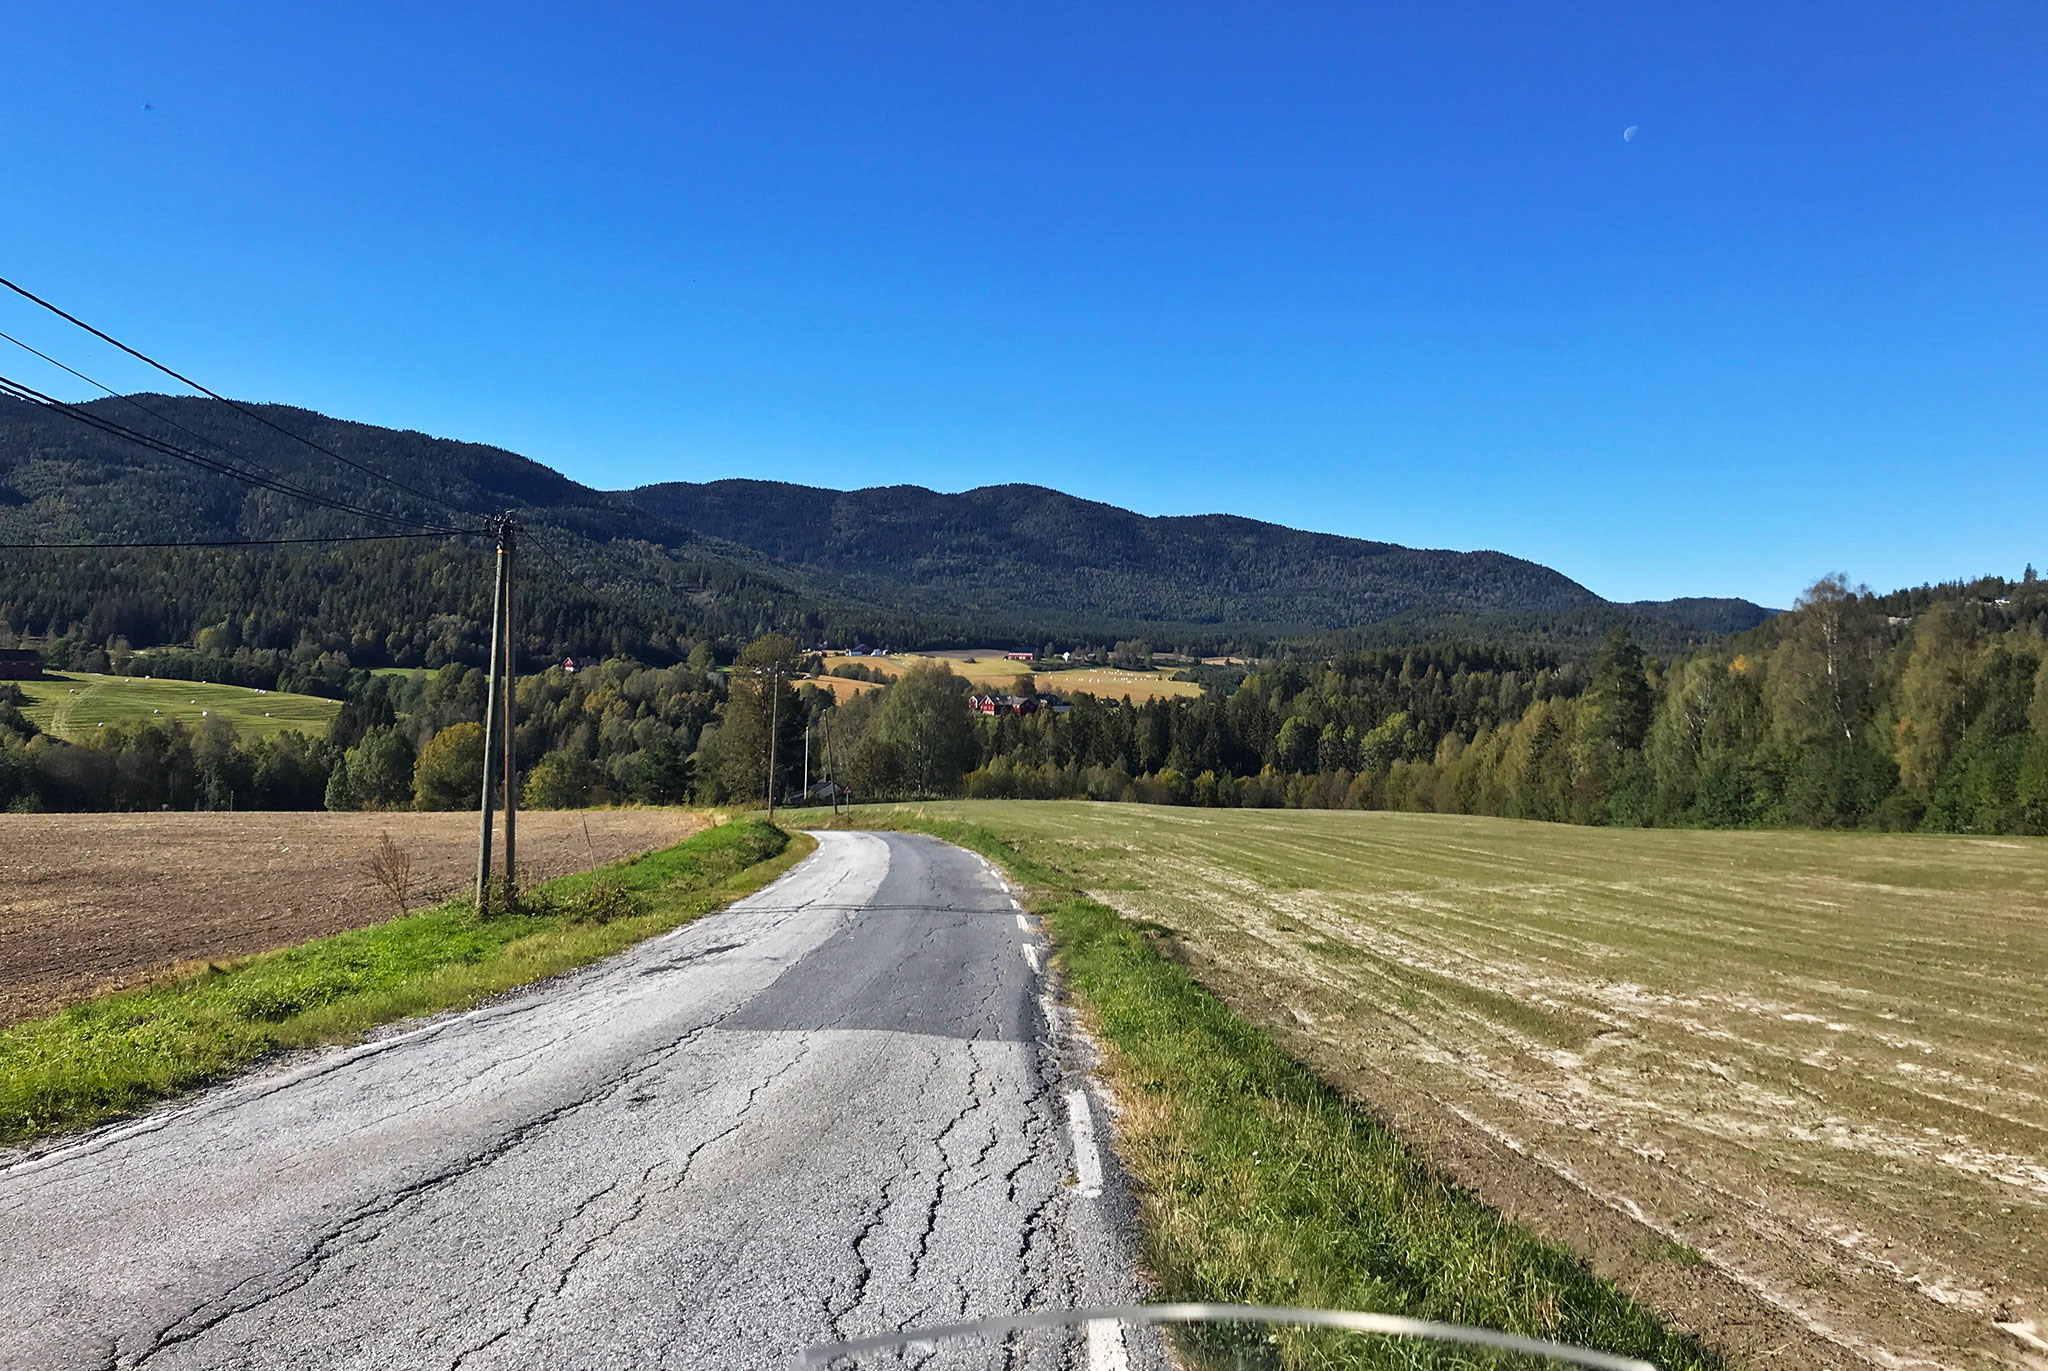 Fall riding: Back roads en route into the woods again